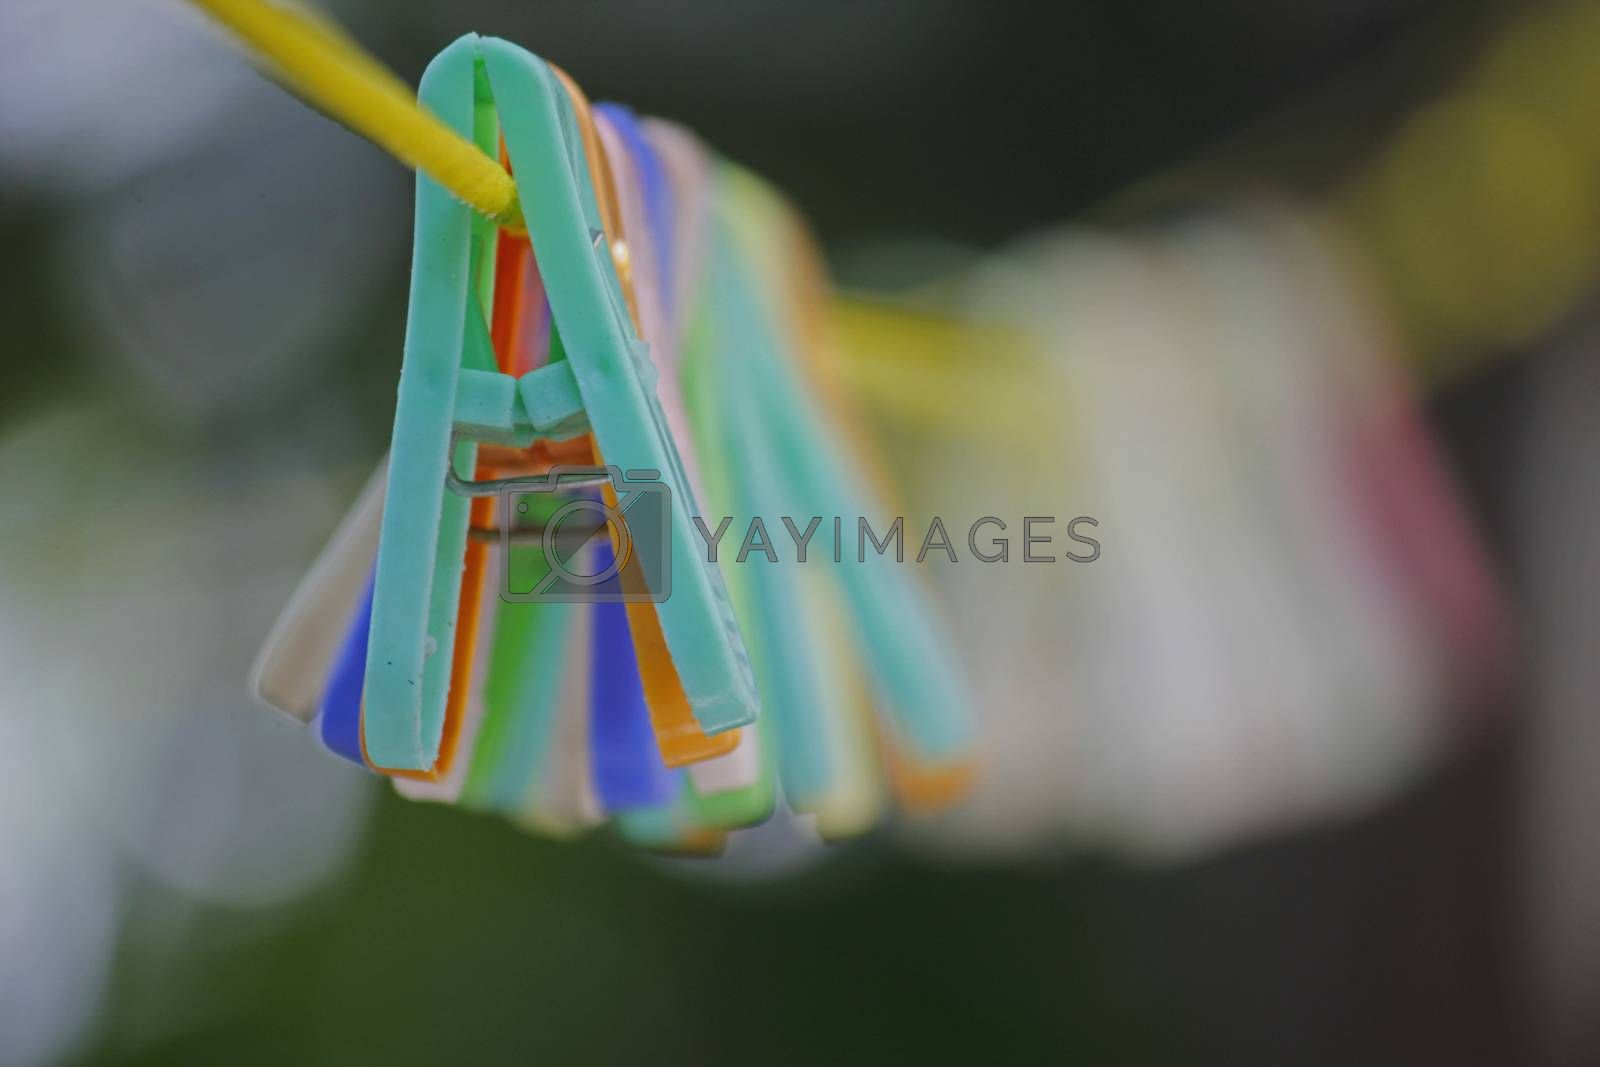 Royalty free image of Colorful clothes pegs hanging in wire by yands